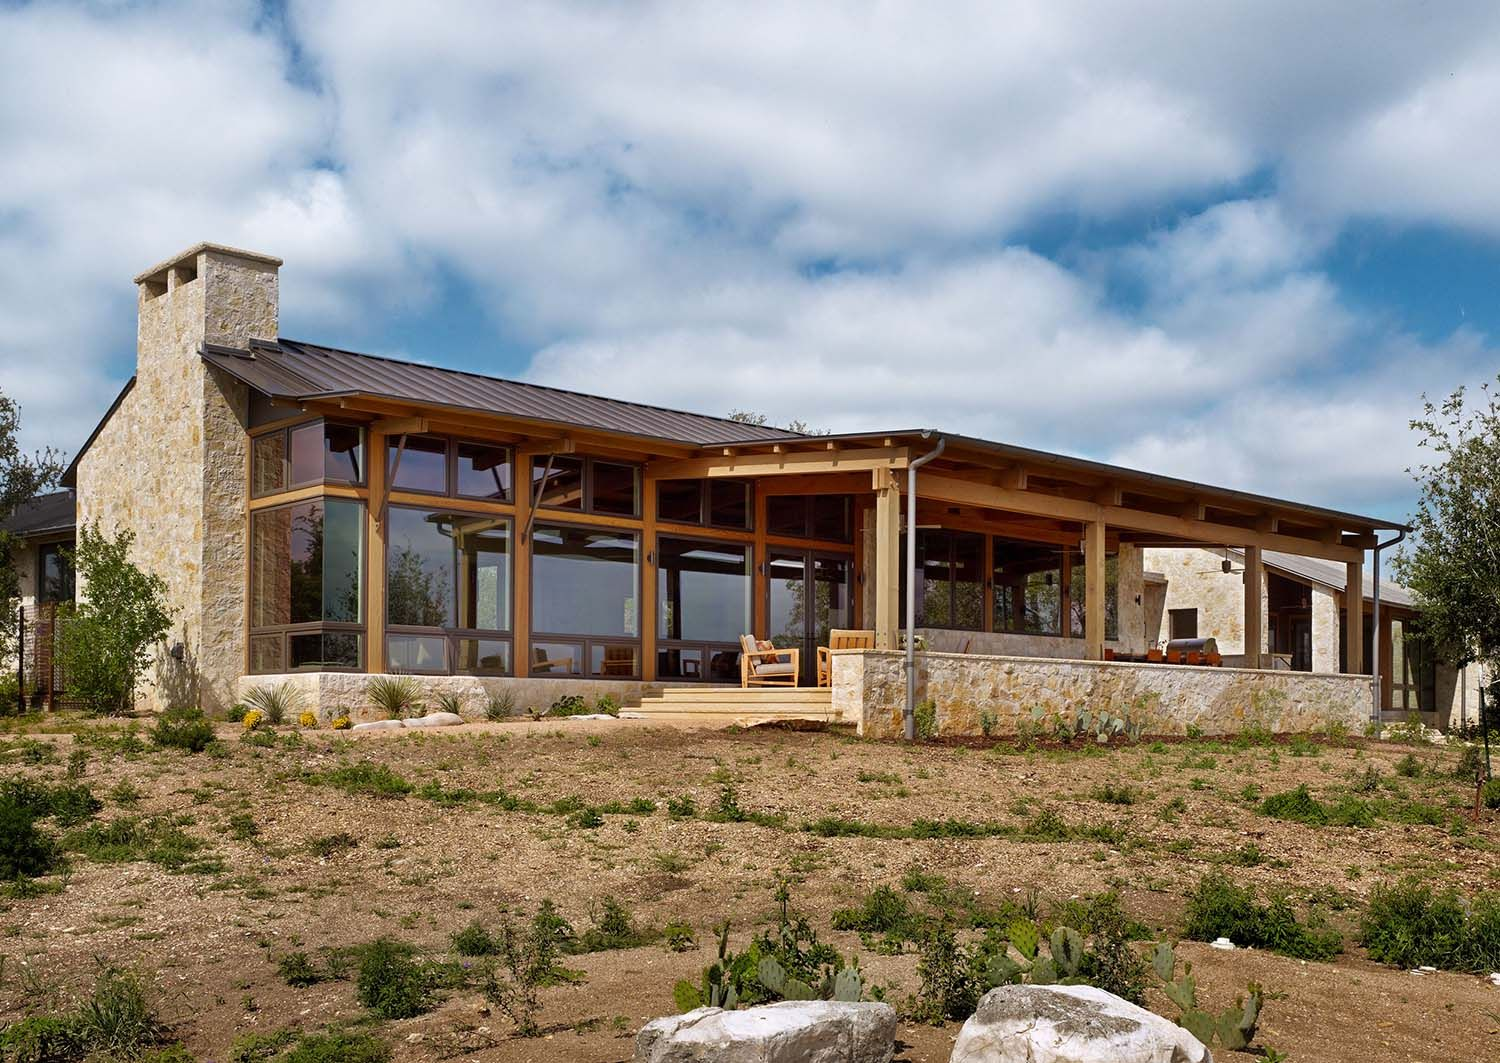 Fresh Twist On The Classic Ranch Style Home In Texas Hill Country Country Home Exteriors Texas Hill Country House Plans Hill Country Homes